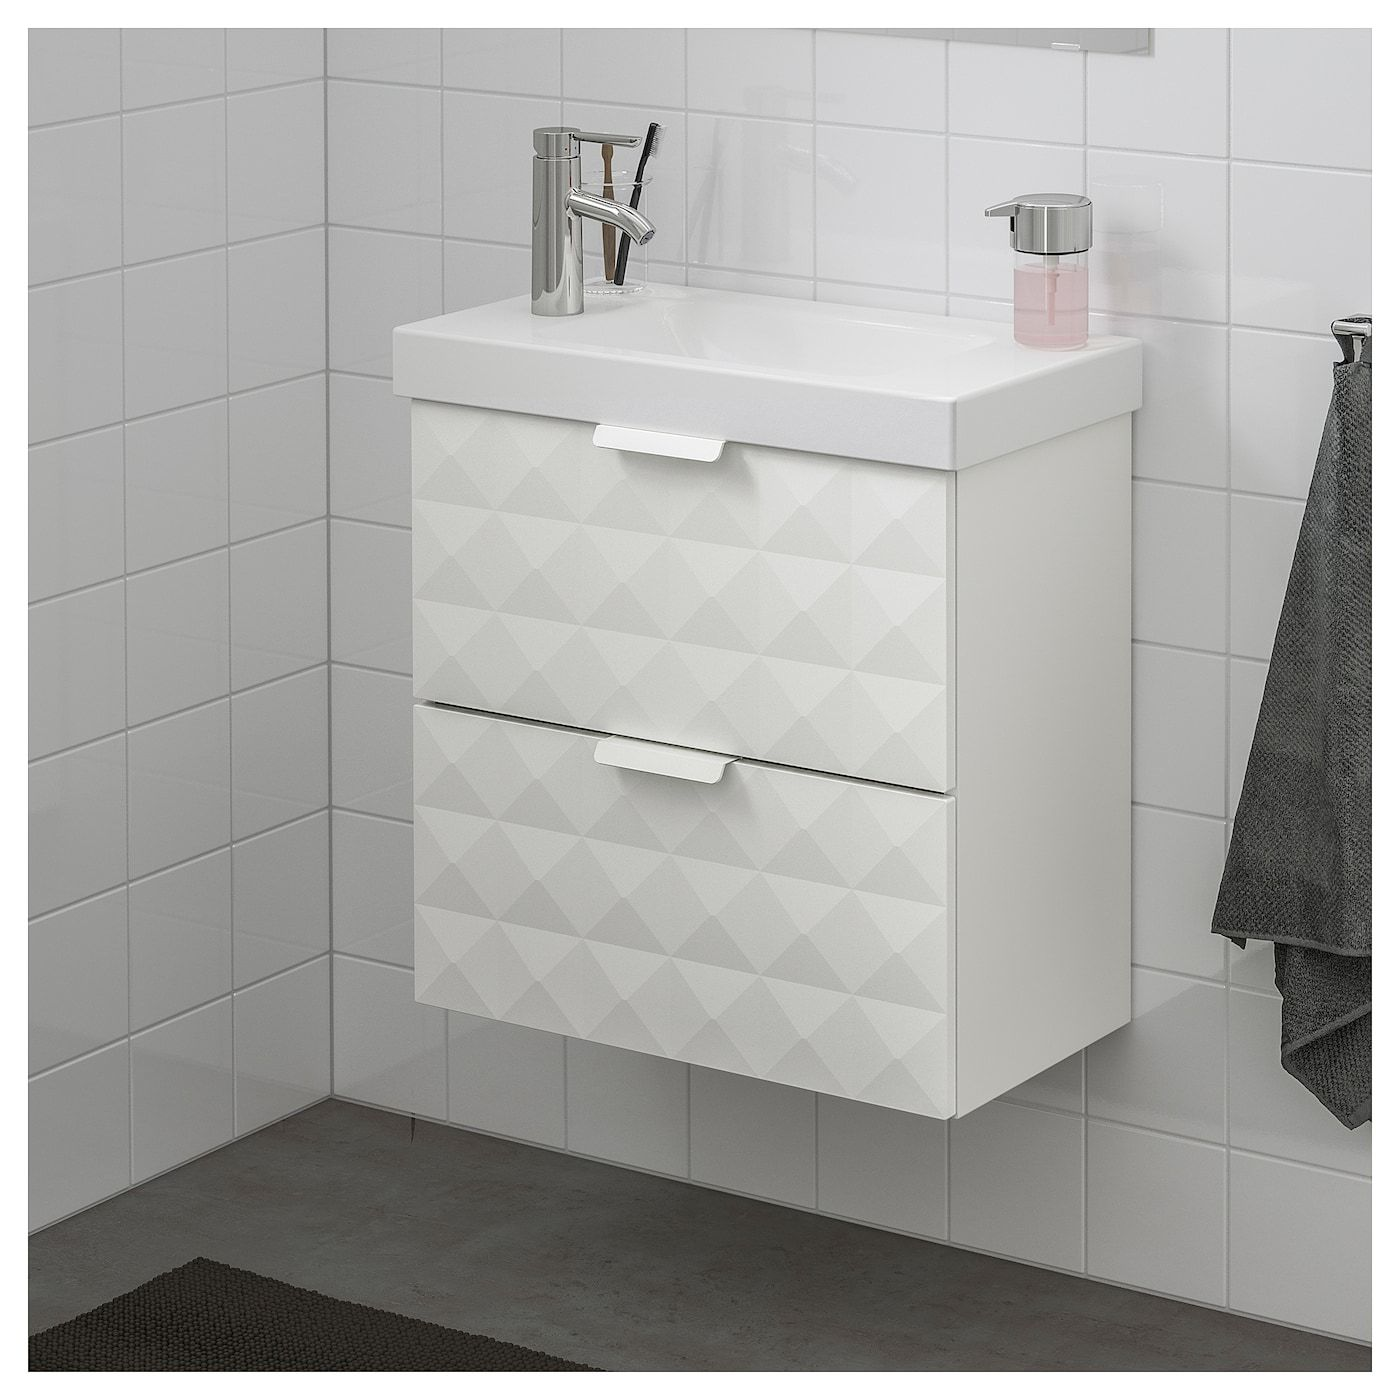 Us Furniture And Home Furnishings Ikea Drawers Wash Stand